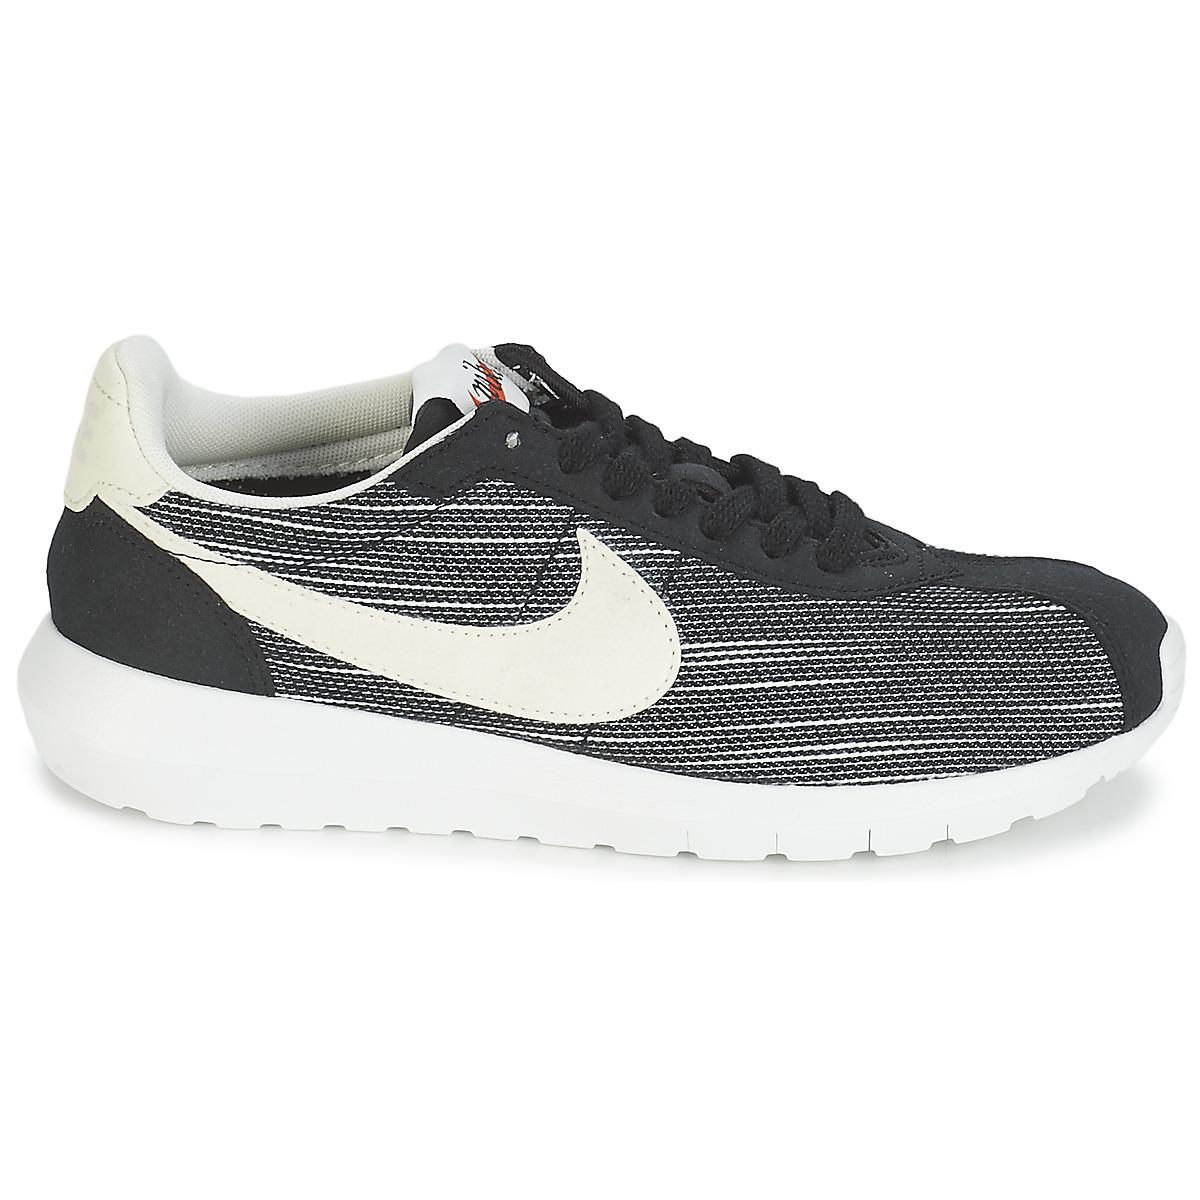 low priced 7e635 8bfa3 Nike - Roshe Ld-1000 W Women s Shoes (trainers) In Black - Lyst. View  fullscreen